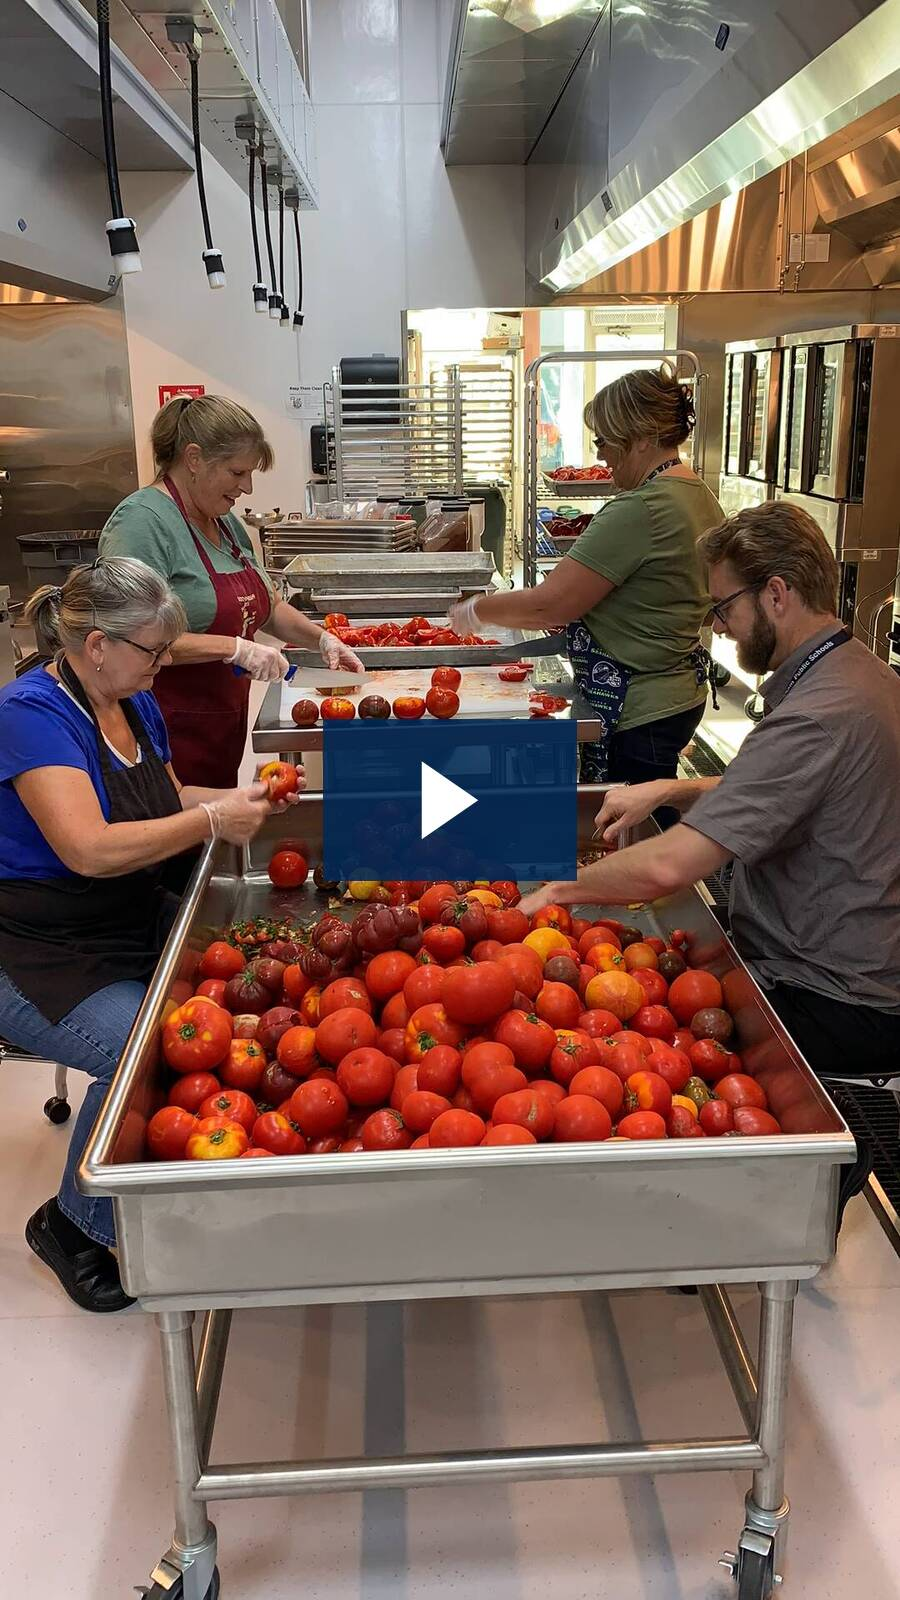 Two tons of tomatoes get processed!